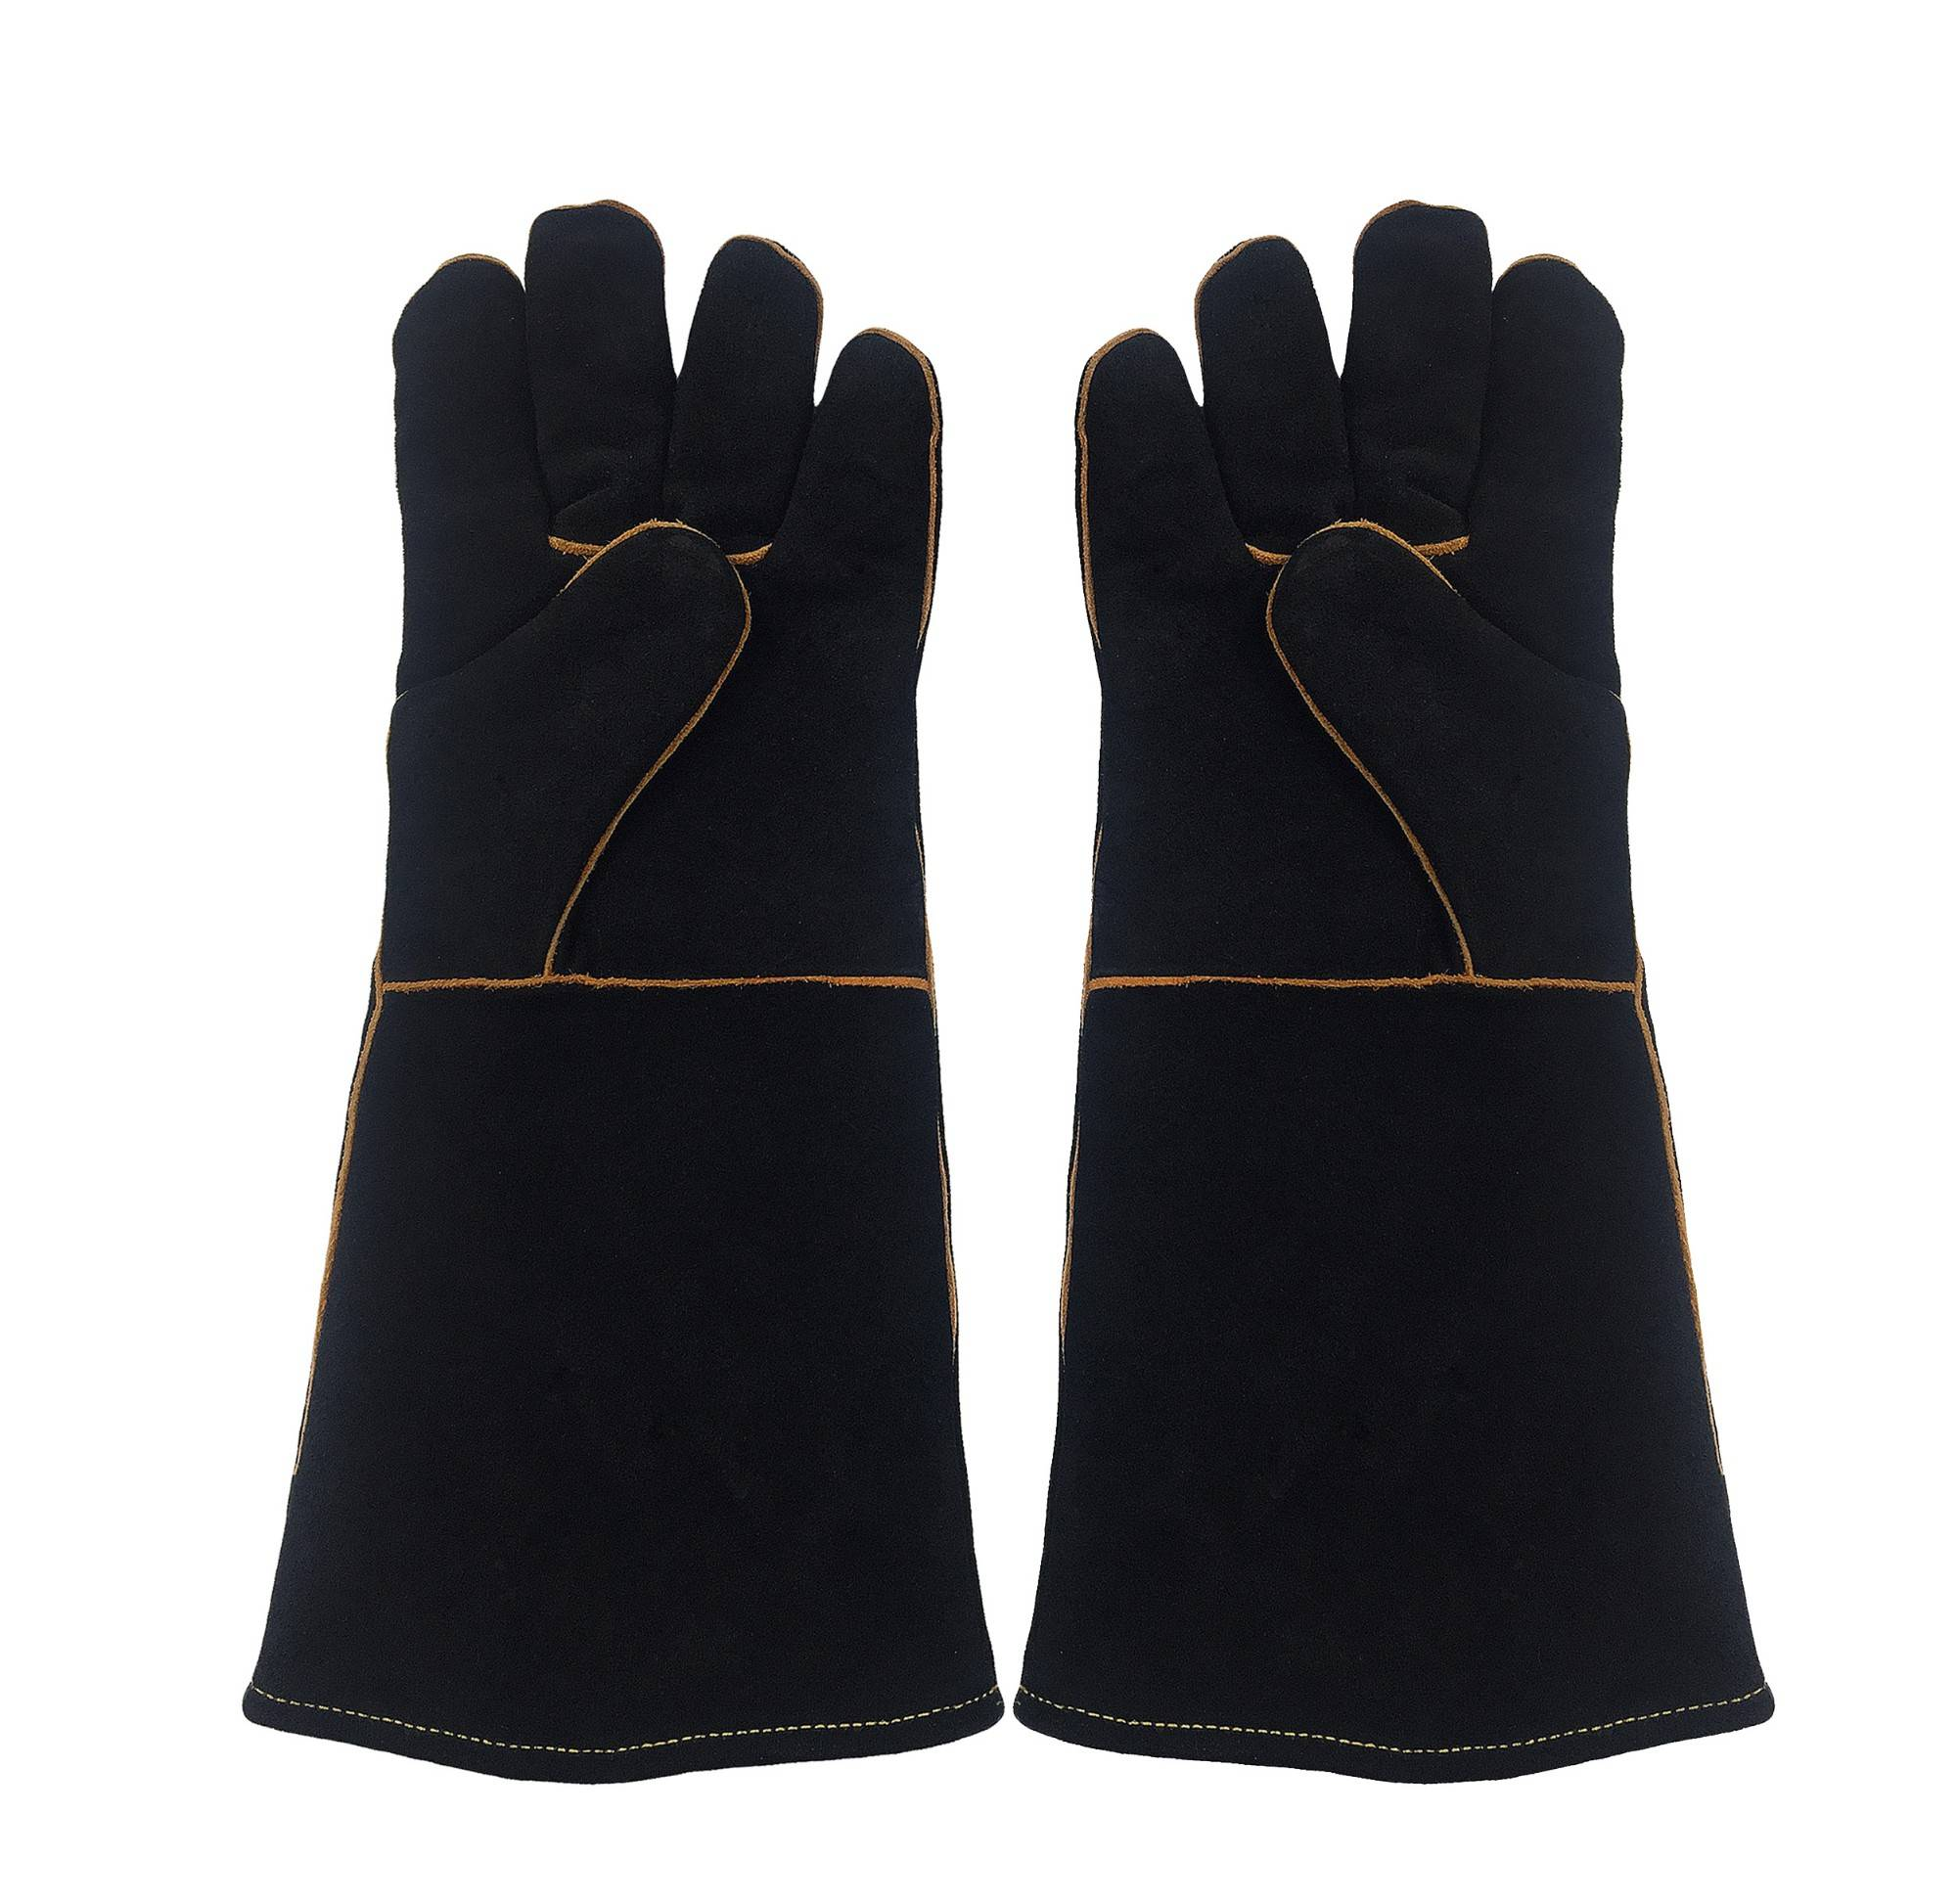 KIM YUAN  Black Welding Gloves Heat Resistant Perfect for Welder/Cooking/Baking/Fireplace/Animal Handling/BBQ